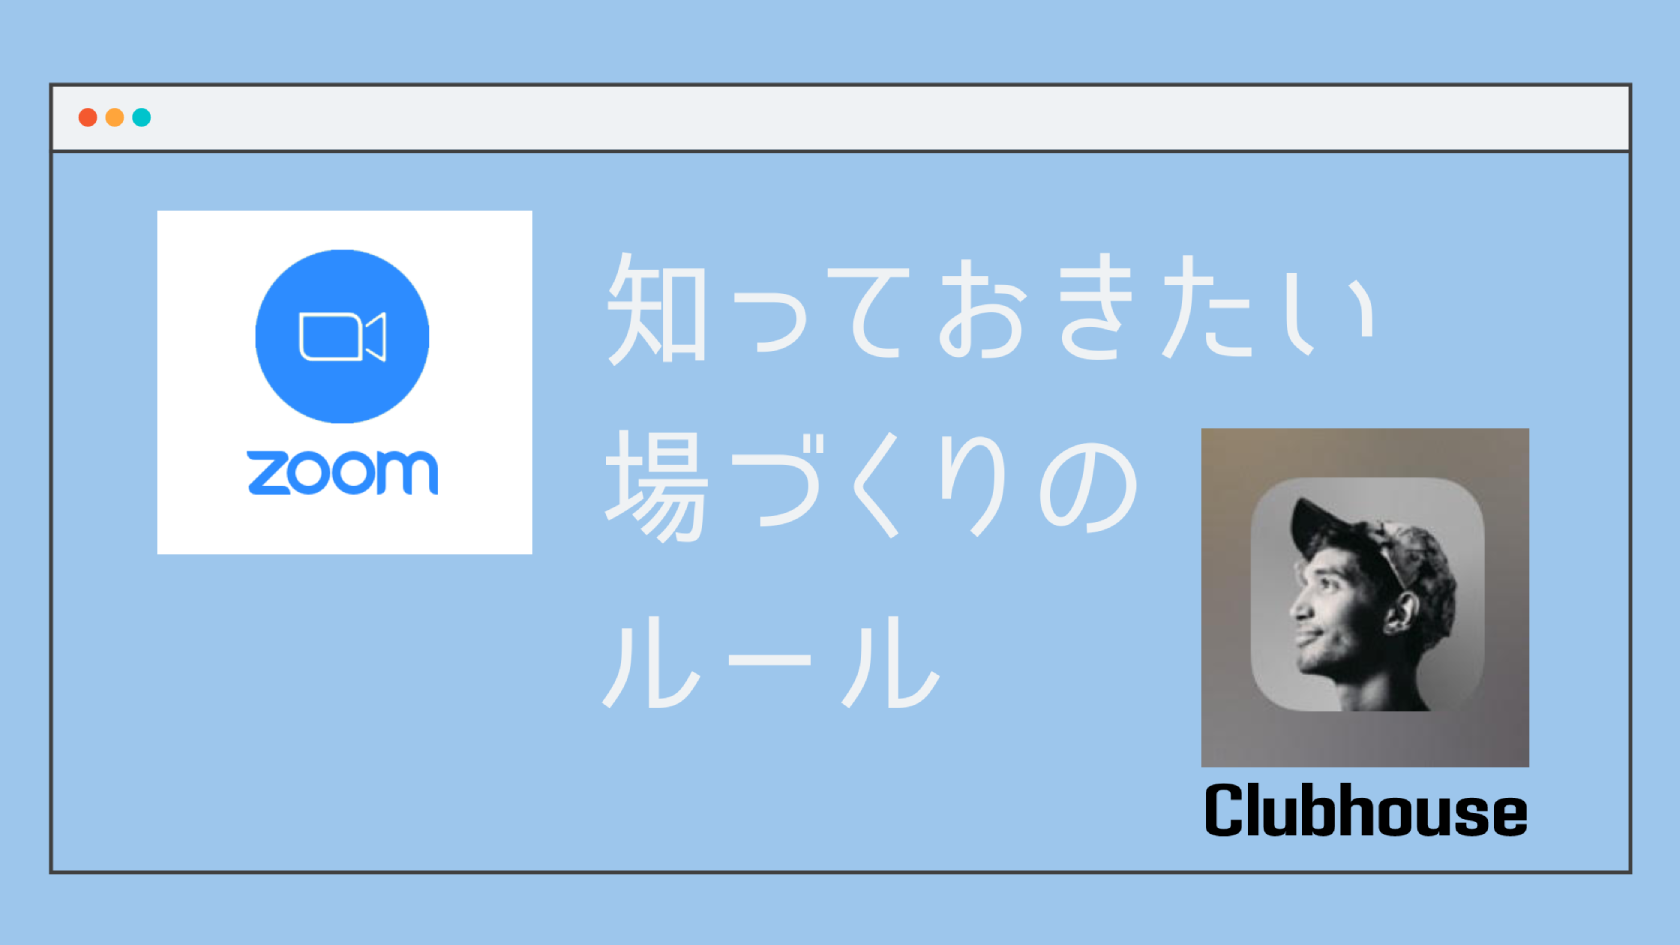 zoom、clubhouseオンライン場づくり